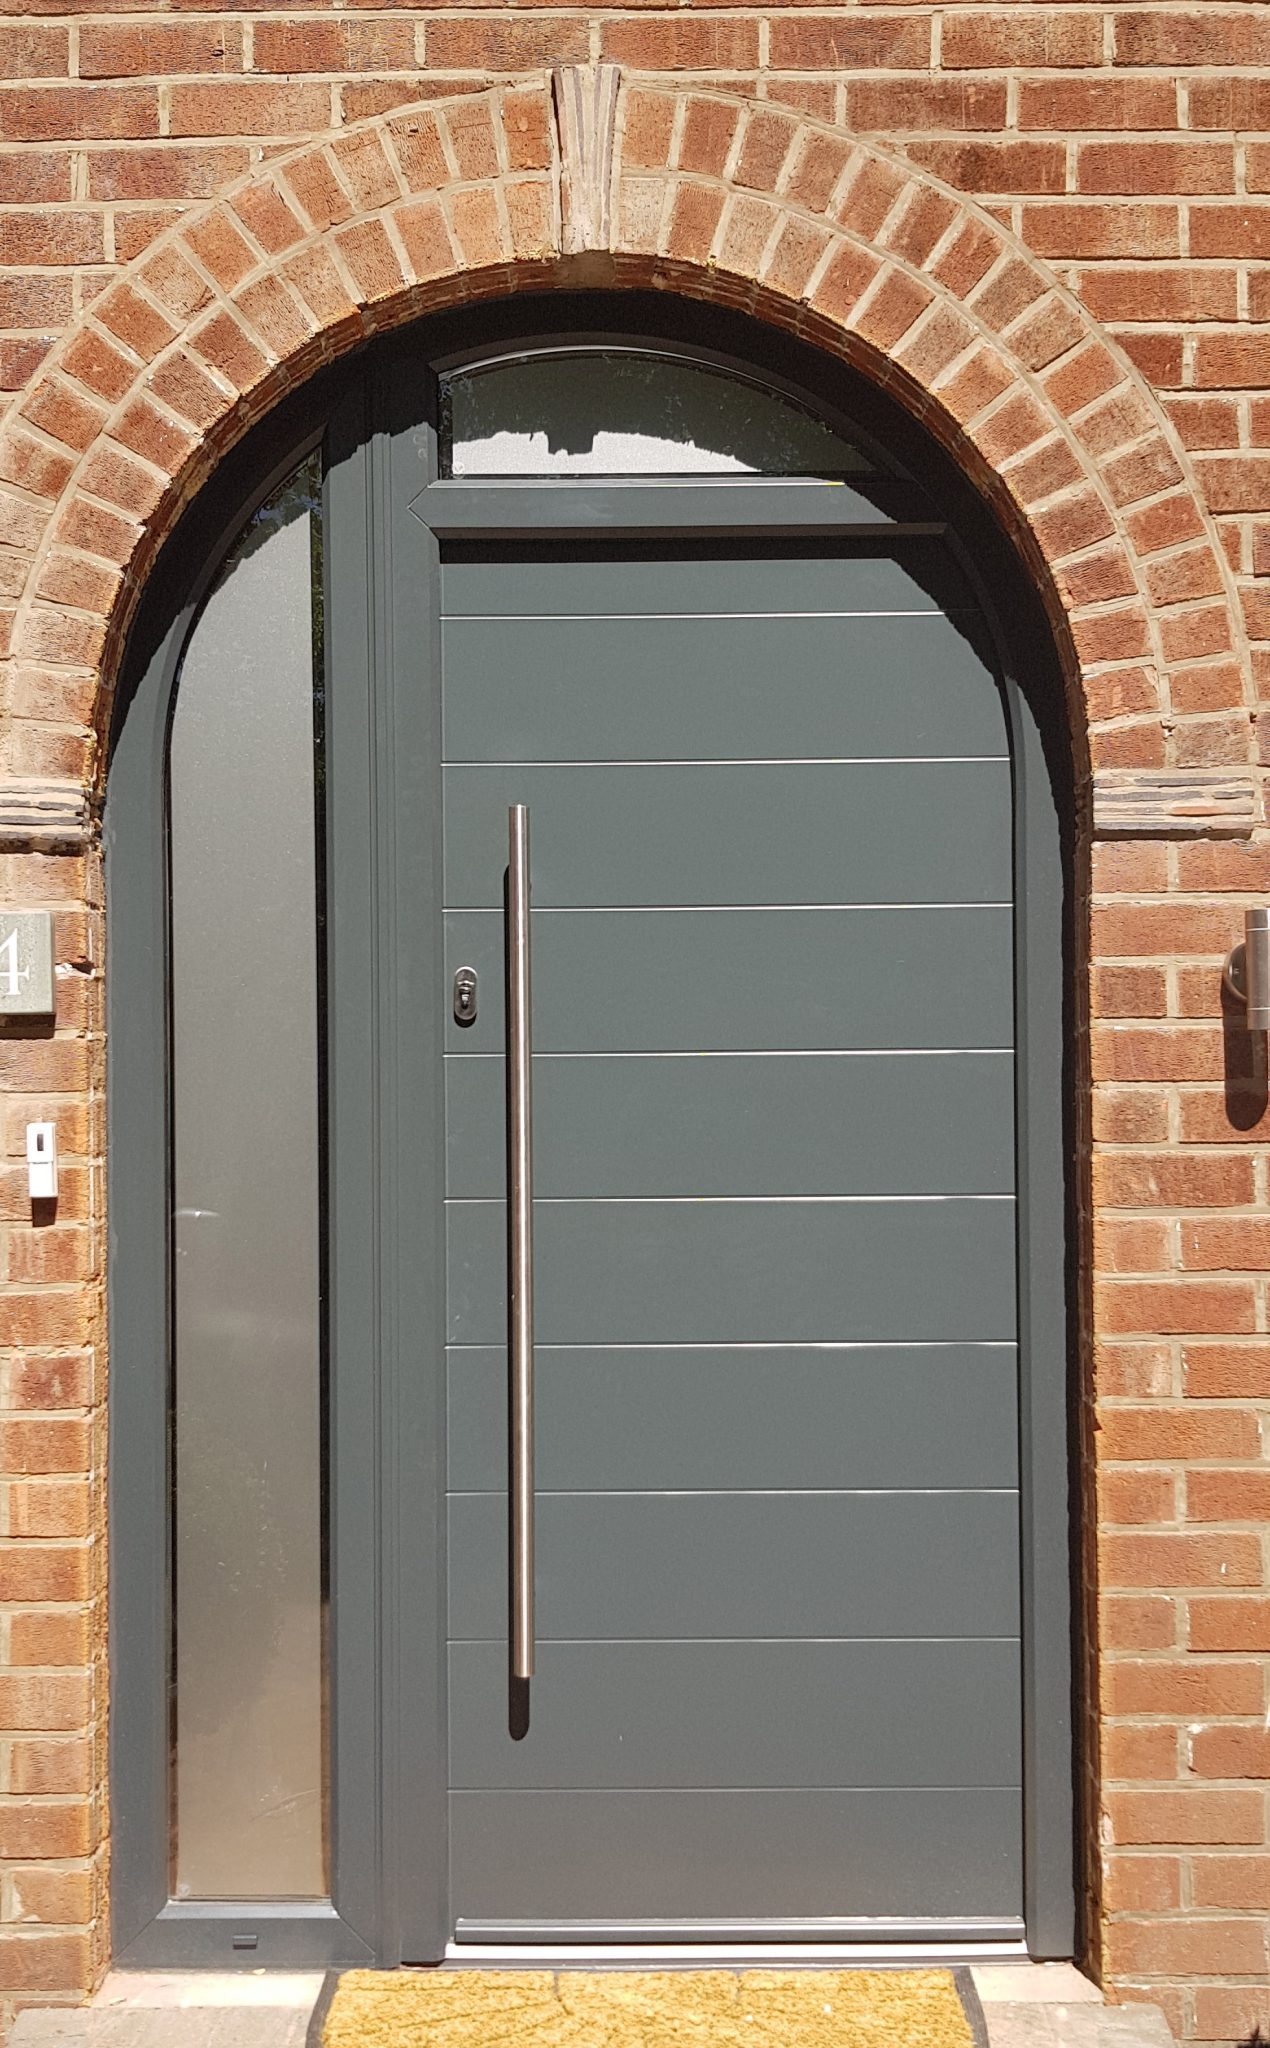 Modern Doors - Composite Doors, Arched Frames and Windows